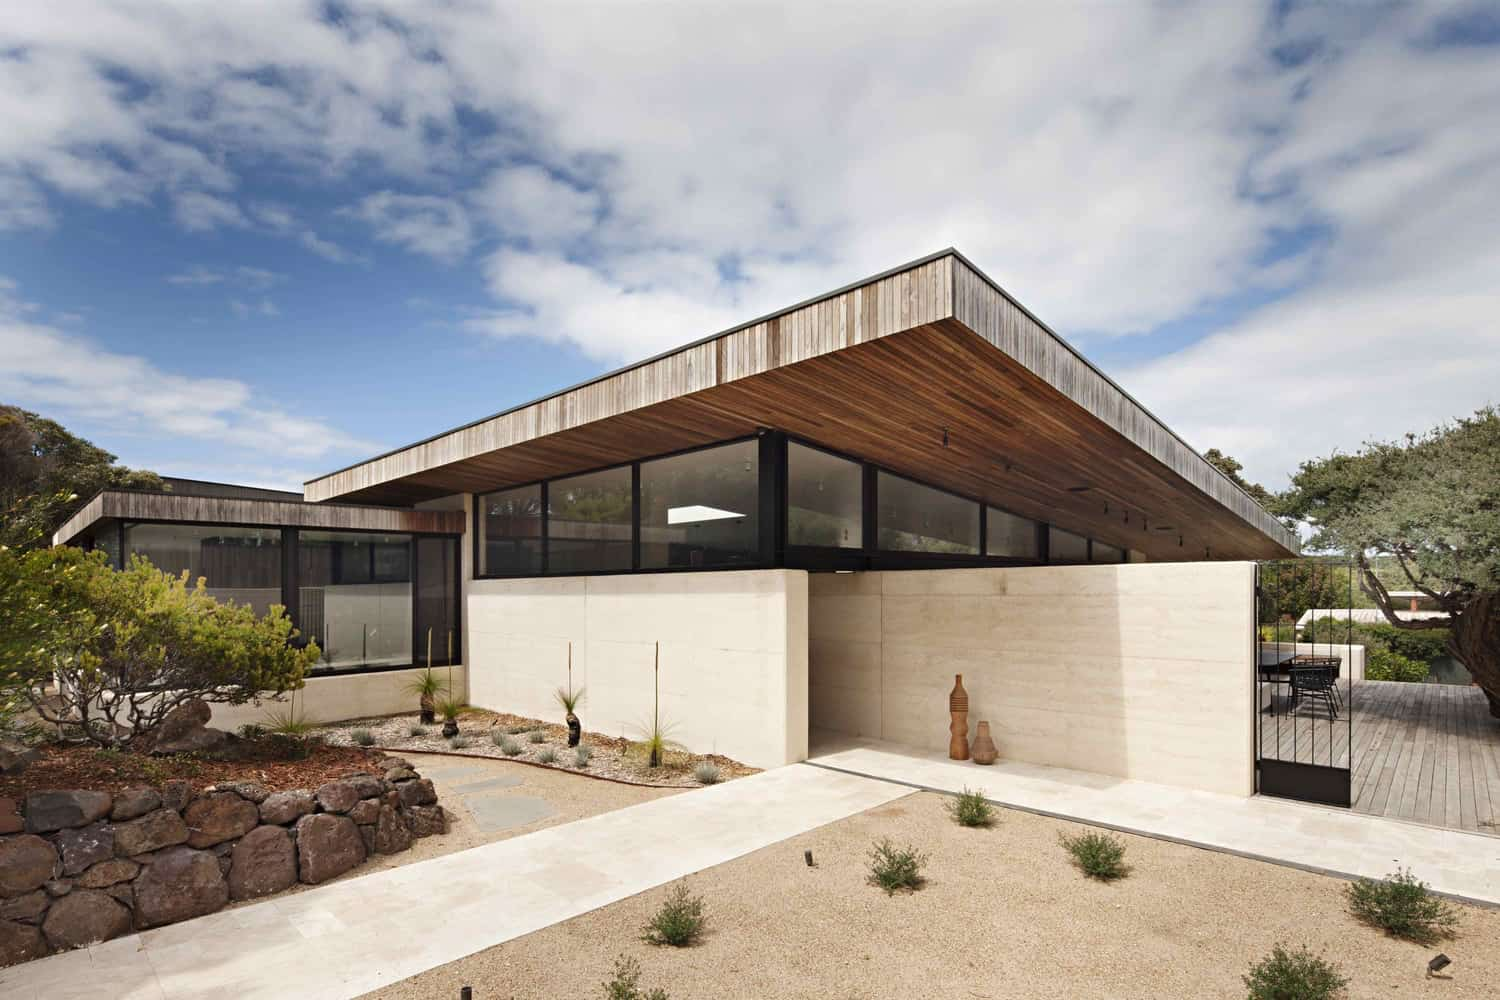 Coastal home in australia showcases rammed earth and timber for Home building architects